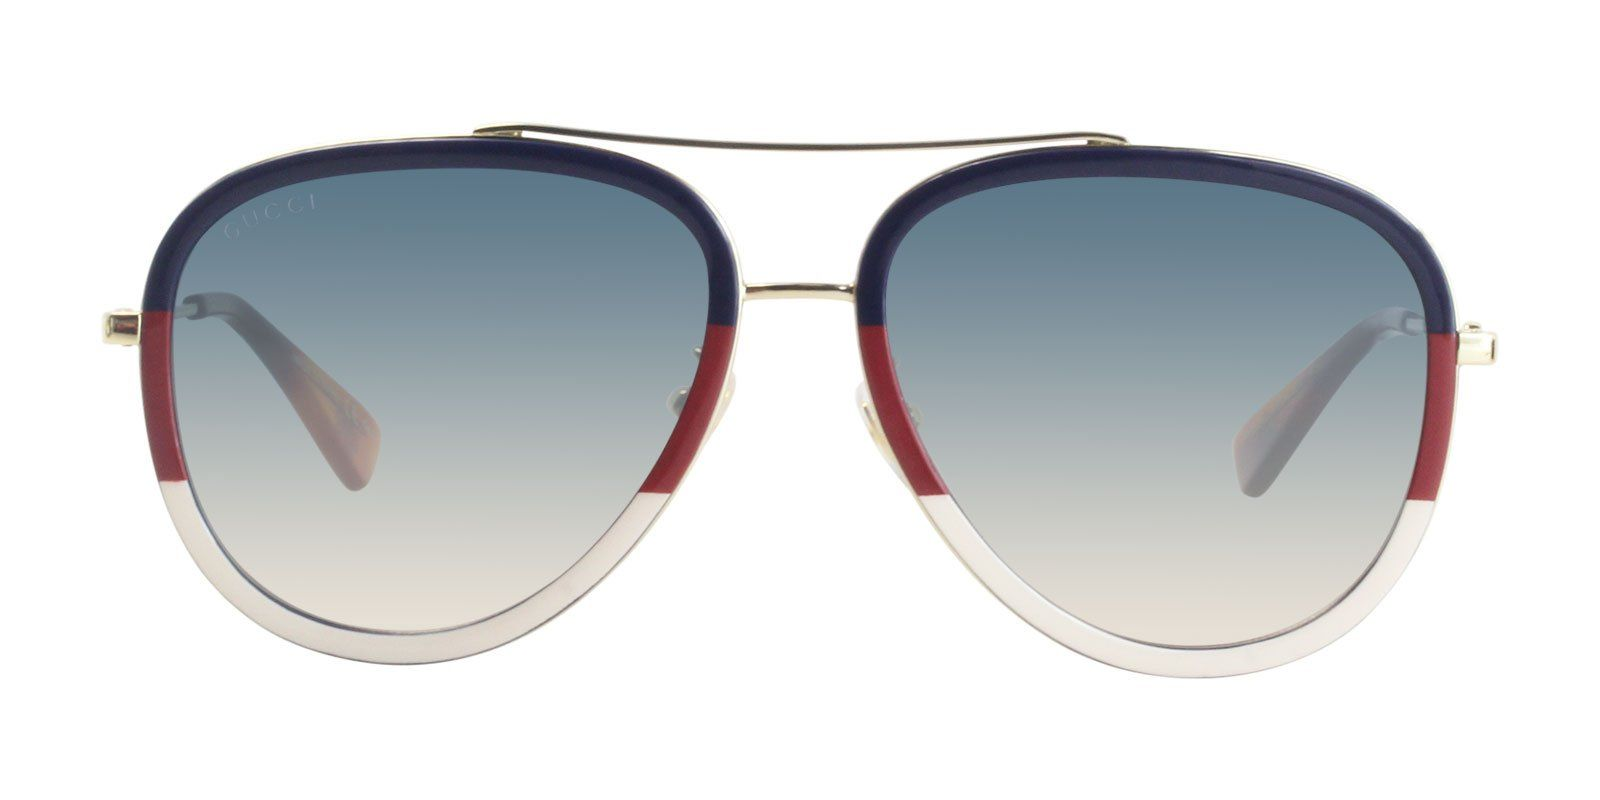 b5411b3b8a43 Gucci GG0062S Blue Red White / Blue Lens Sunglasses   Products   Red ...